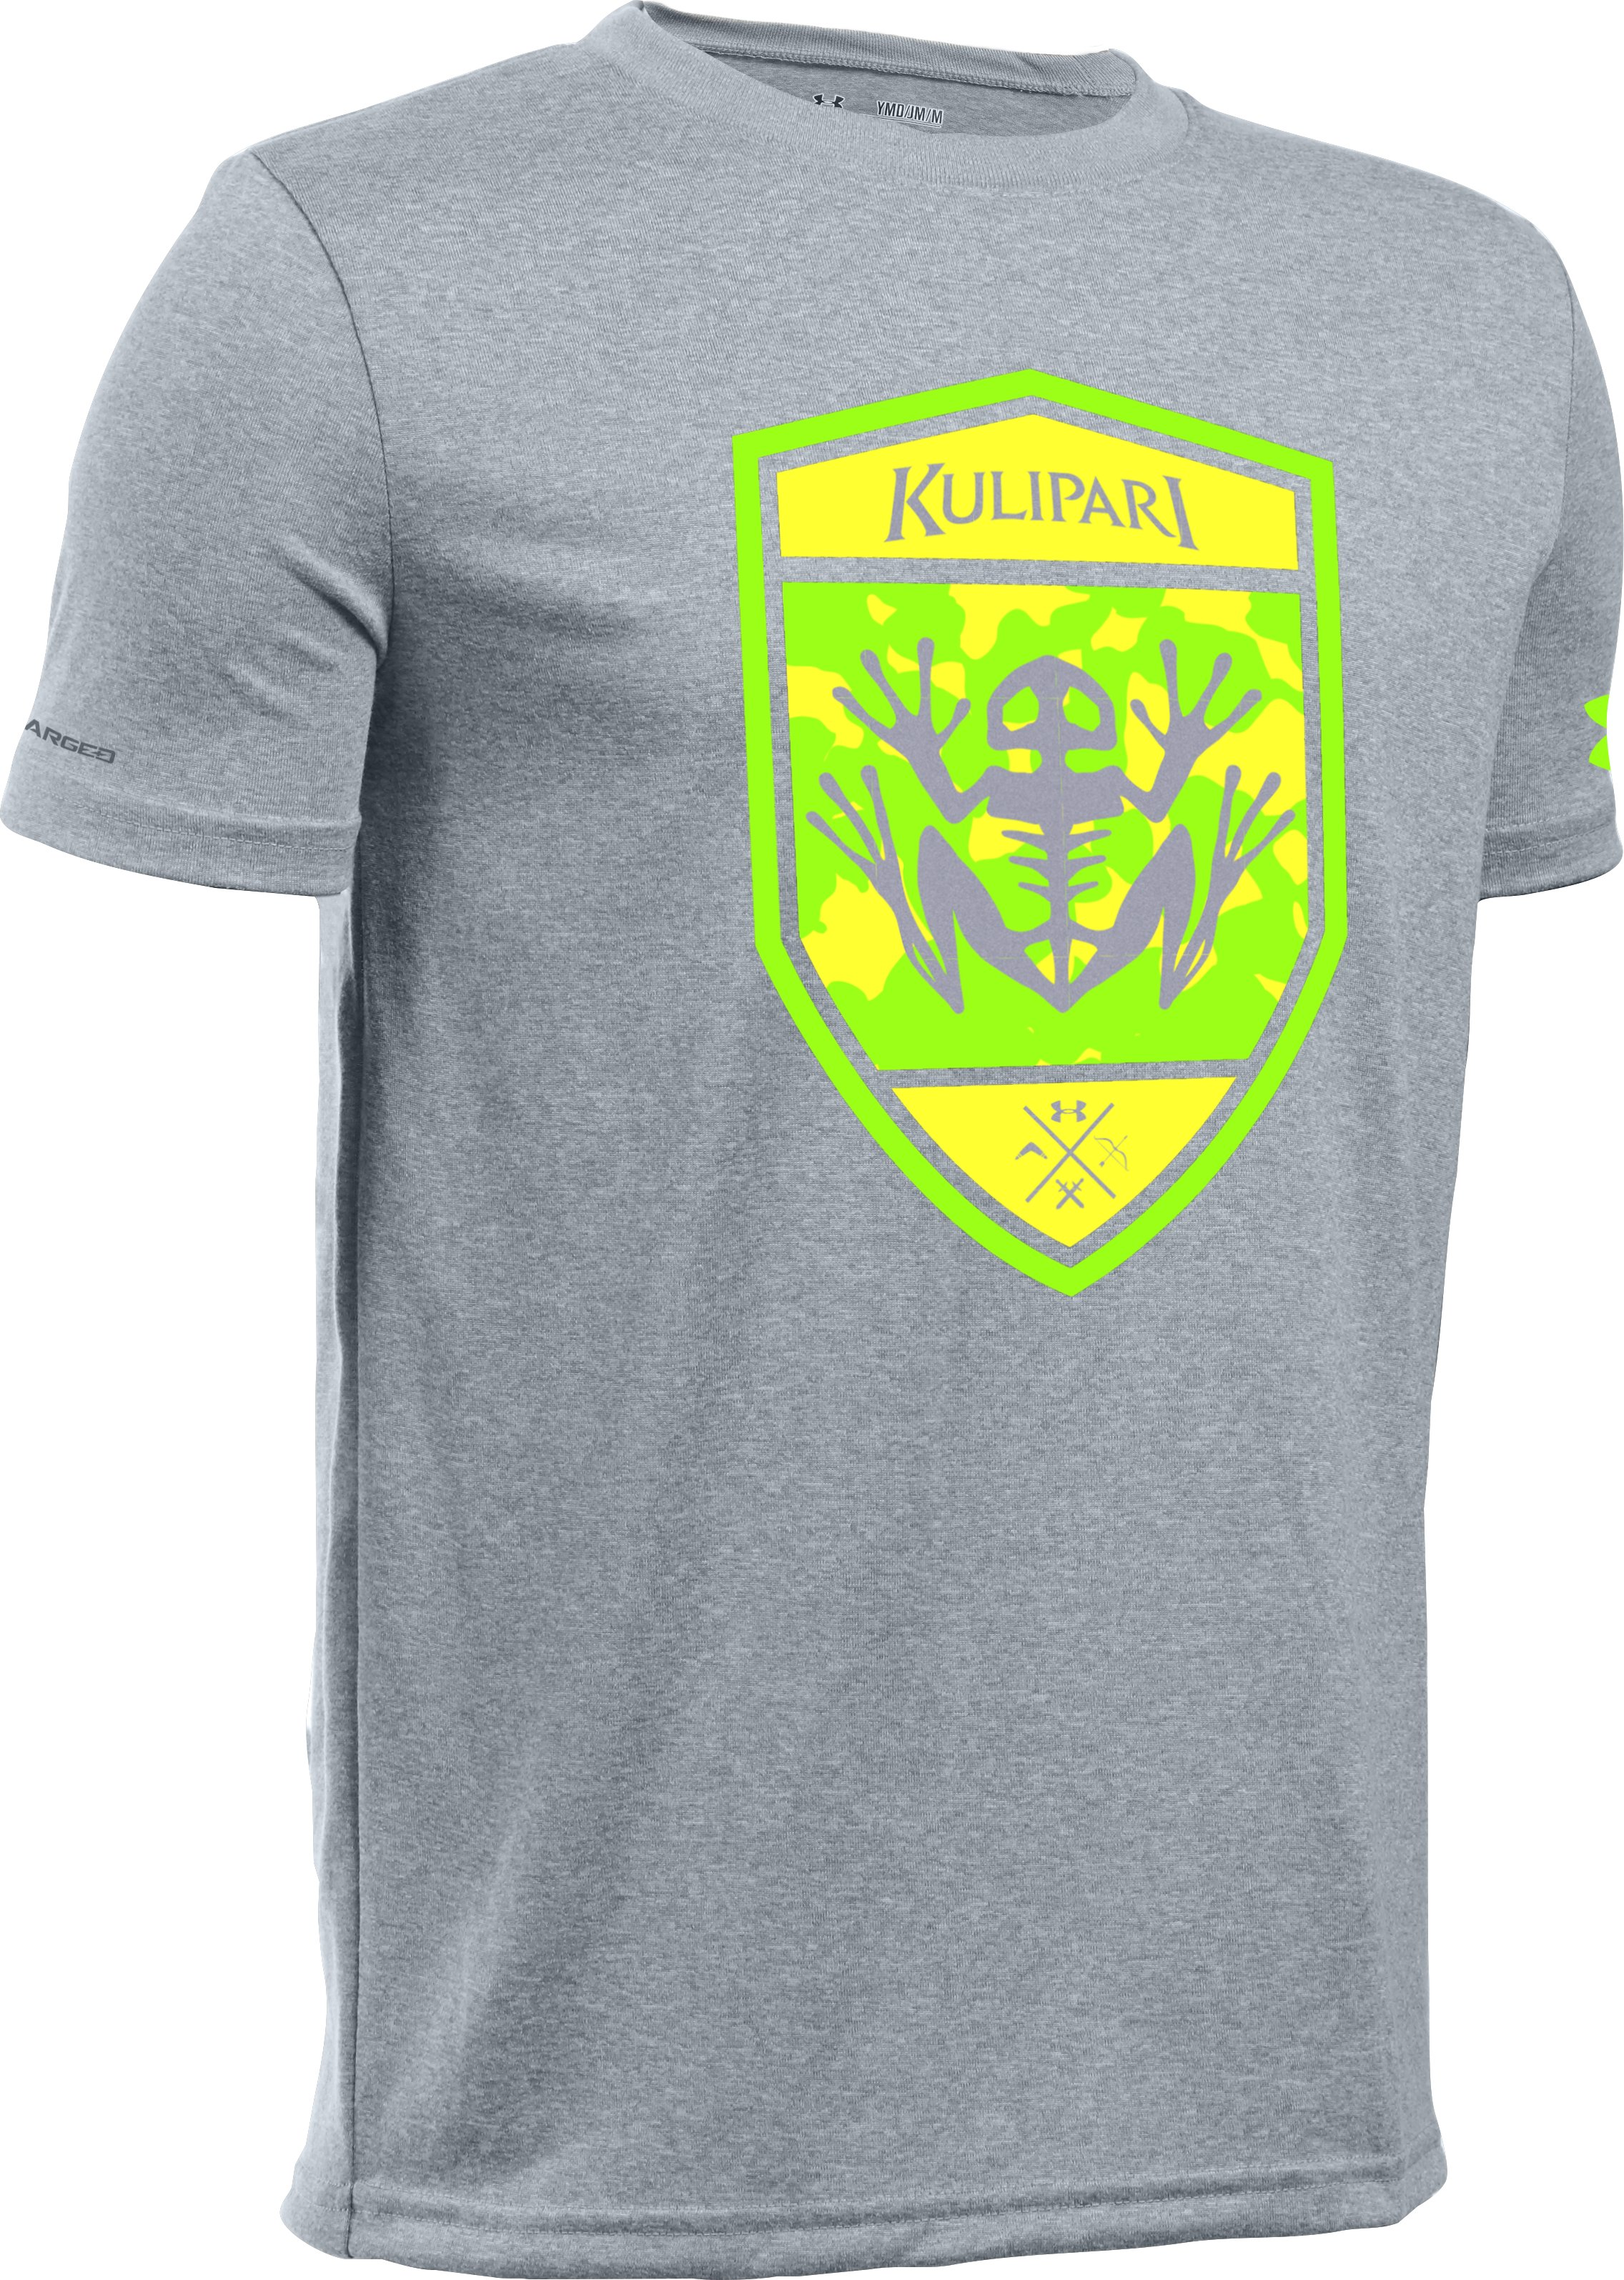 Kids' Kulipari UA Frog Battalion T-Shirt, True Gray Heather,